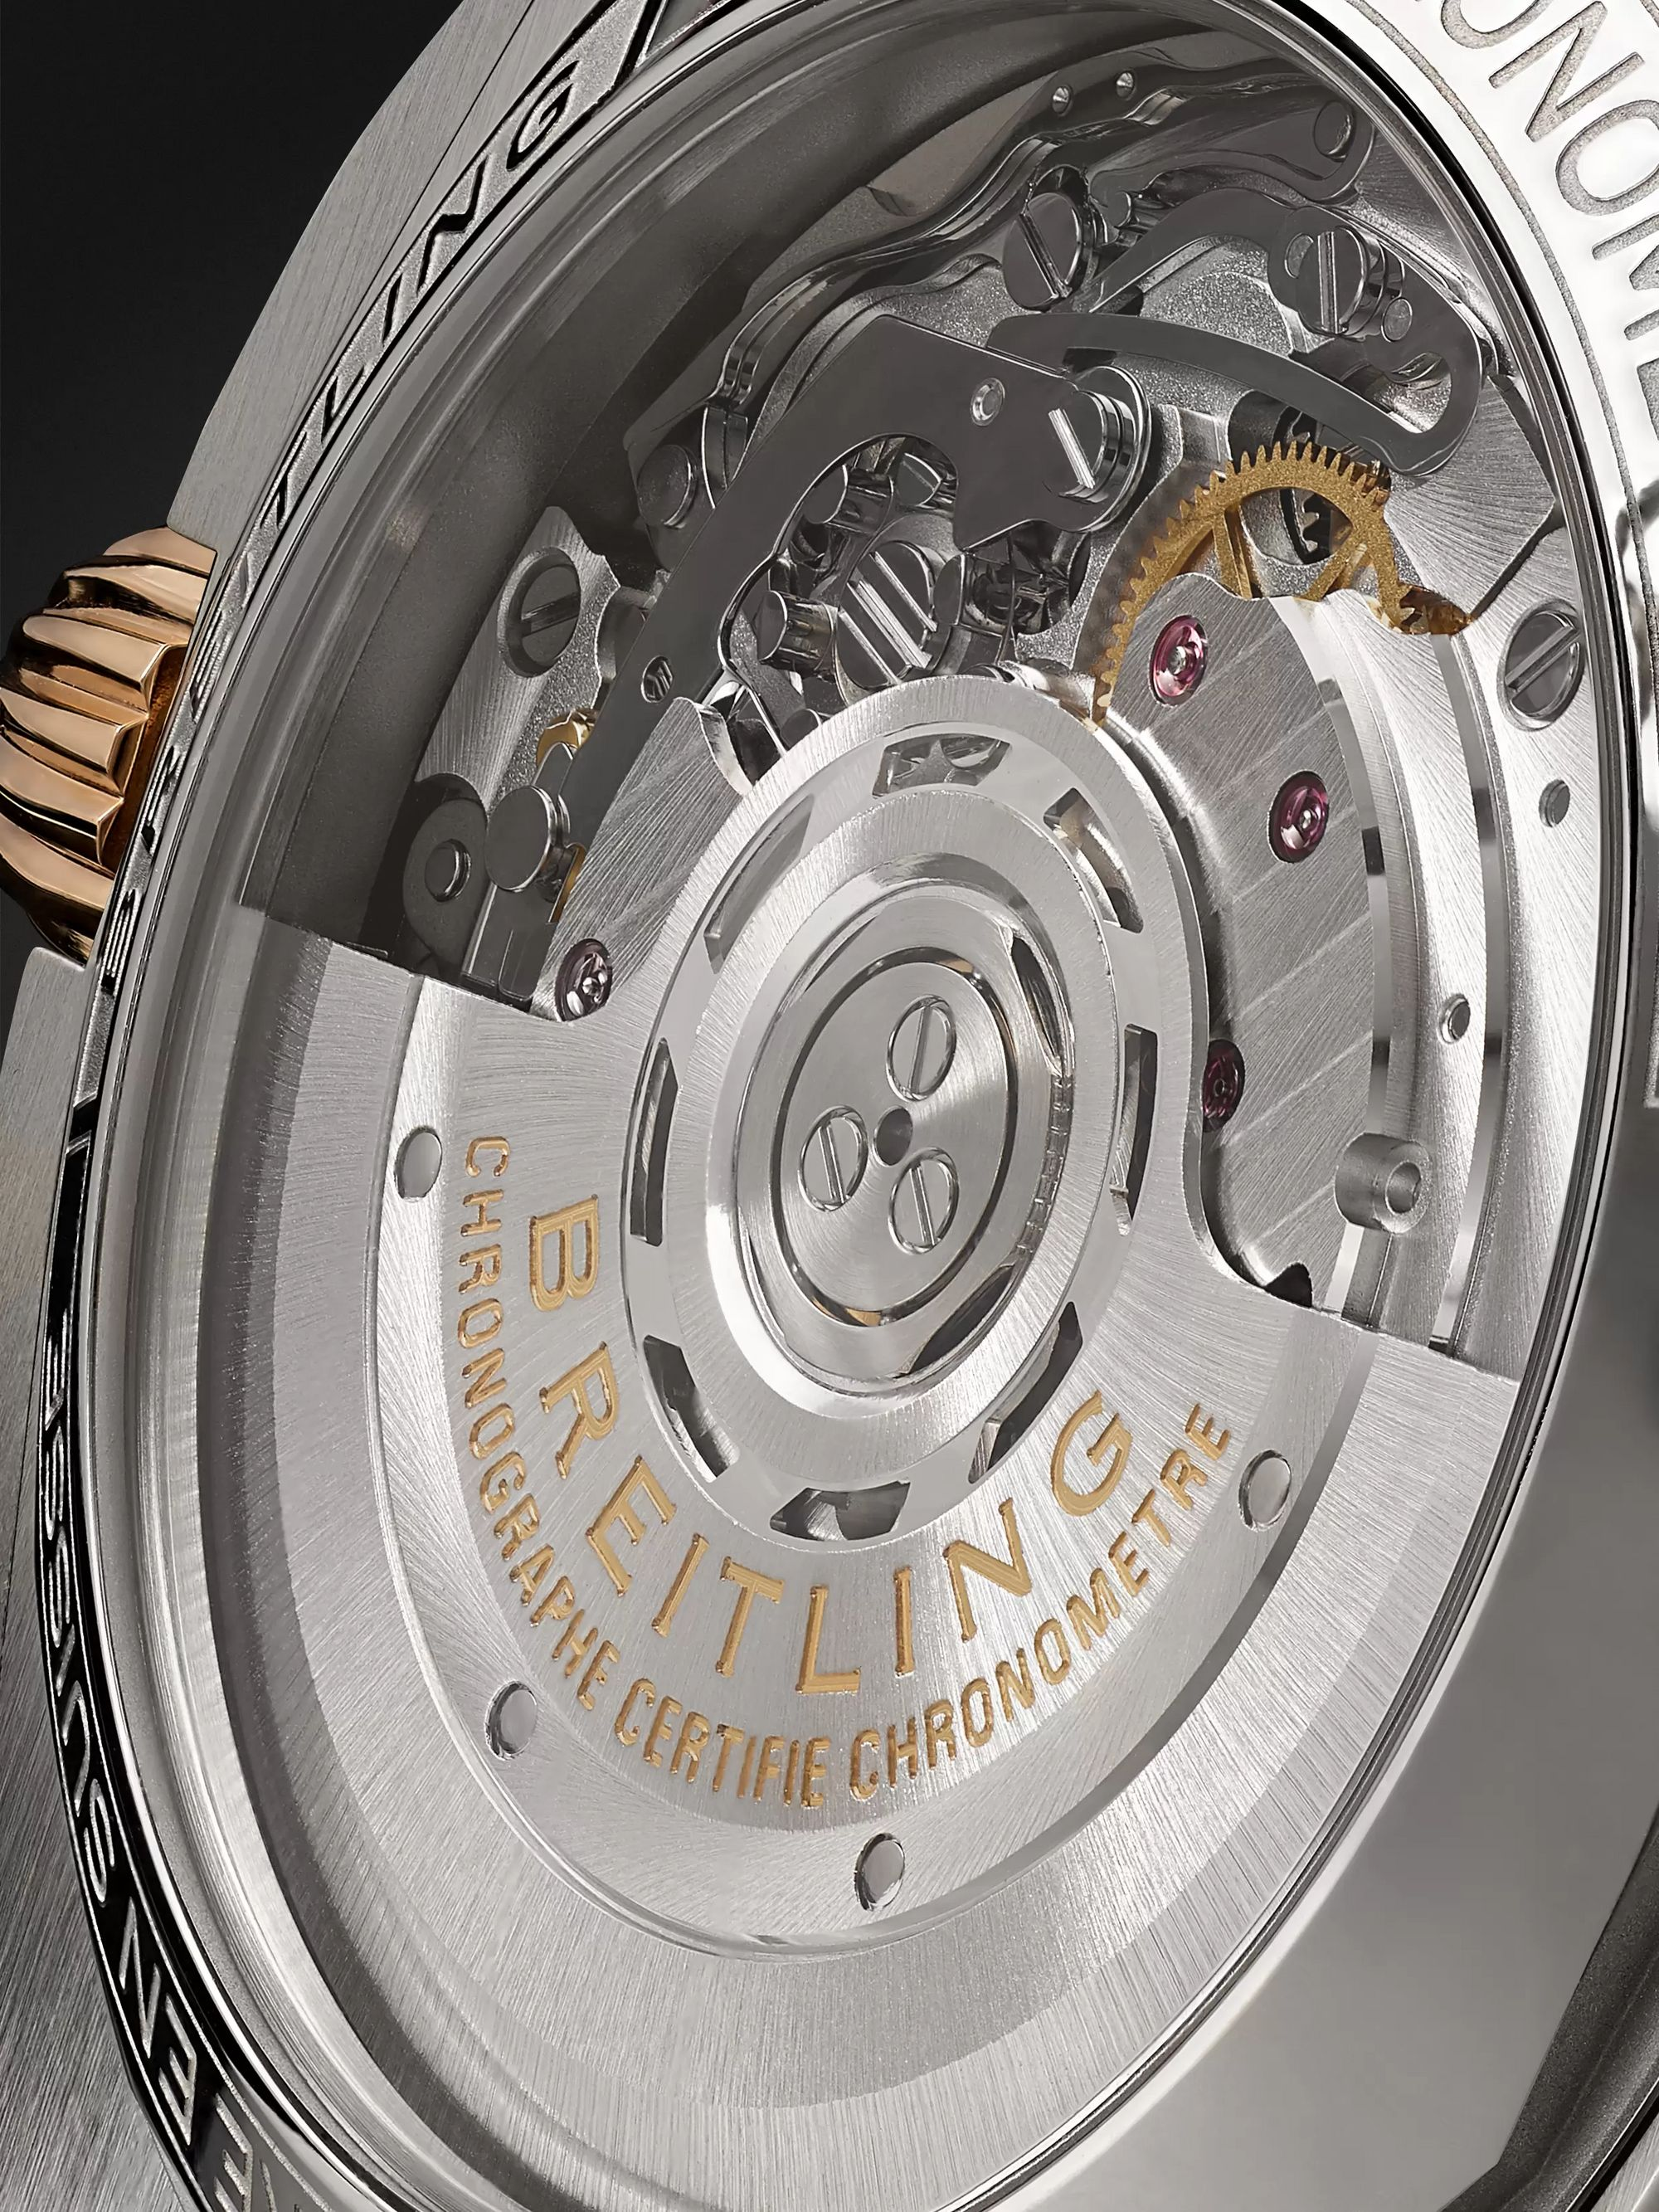 Breitling Chronomat B01 Automatic Chronograph 42mm Stainless Steel and 18-Karat Red Gold Watch, Ref. No. UB0134101C1U1